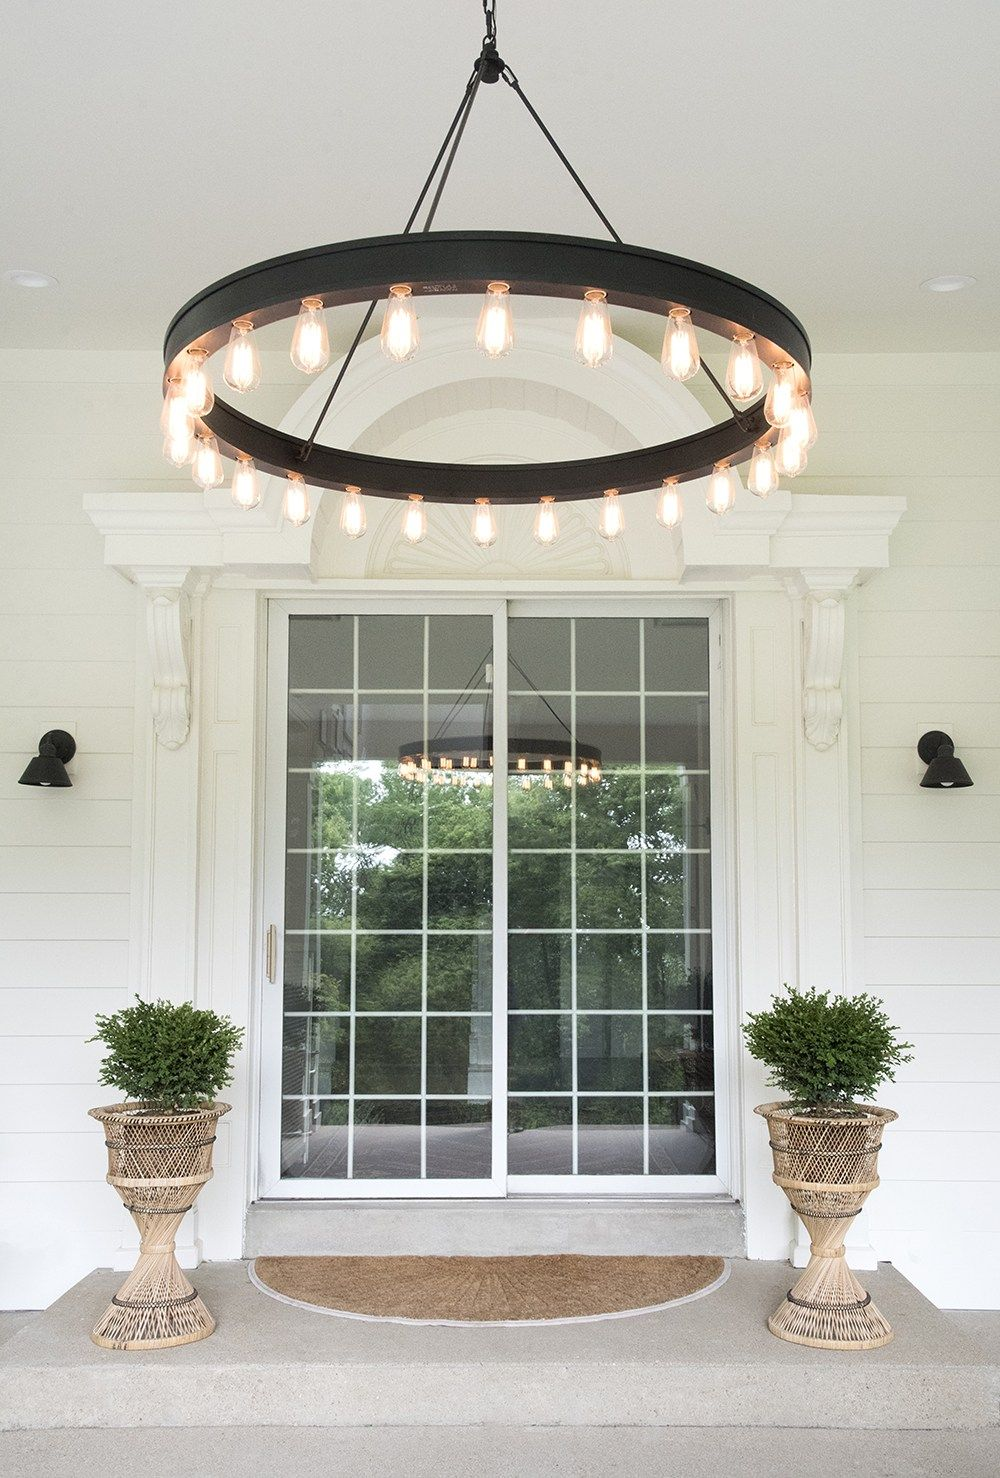 Roundup Outdoor Sconces Porch Lights Under 150 Room For Tuesday Outdoor Porch Lights Outdoor Sconces Front Porch Lighting